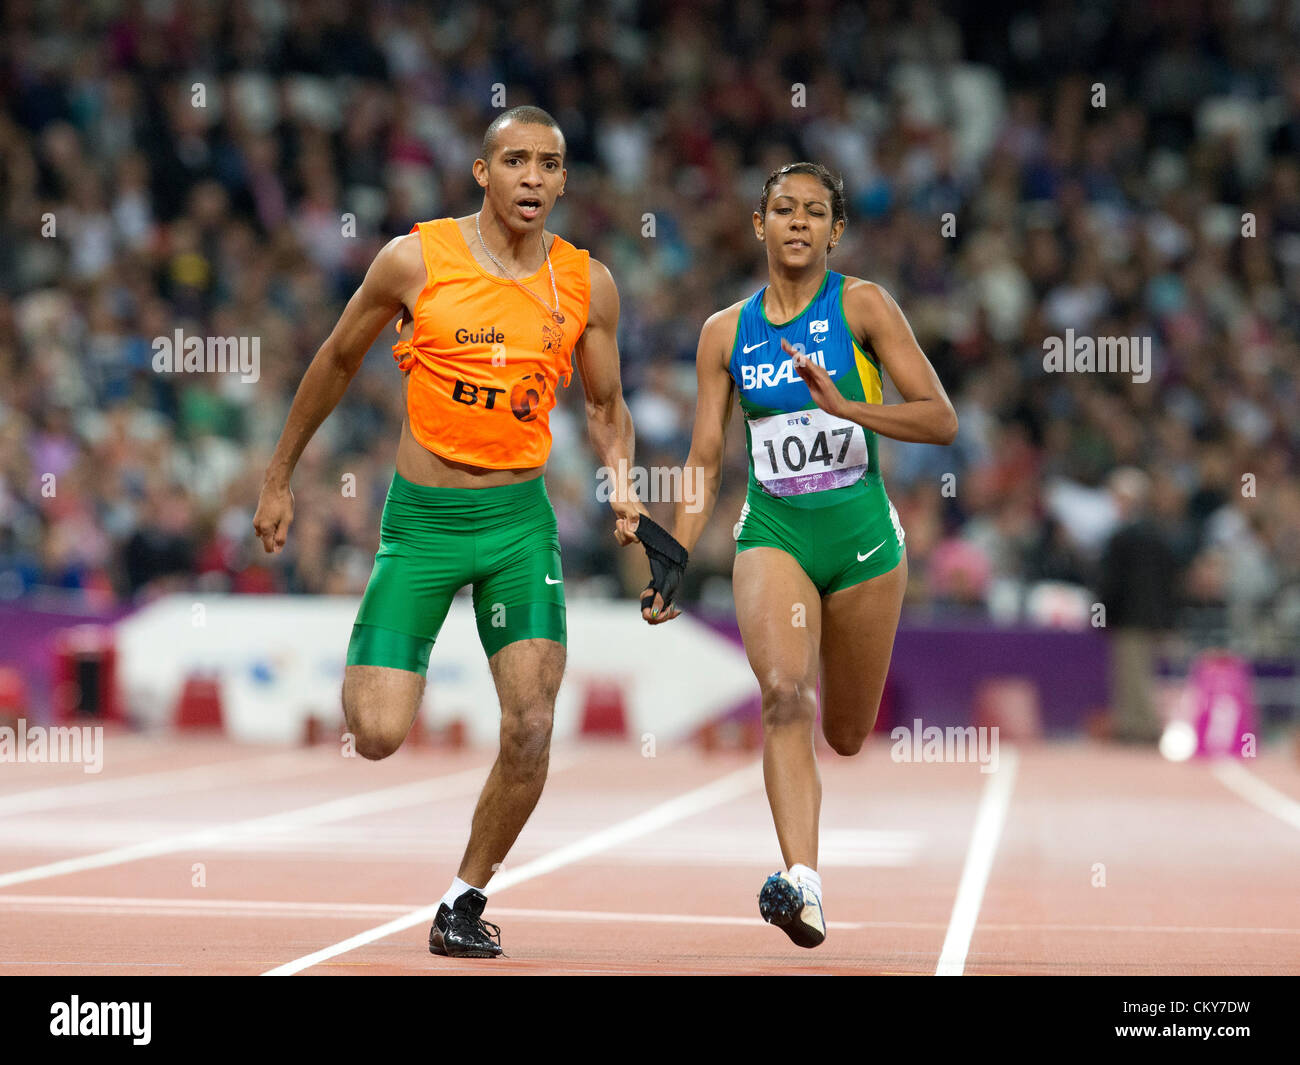 Alice de Olivera Correa of Brazil with her guide Diogo da Silva runs in the women's 100 m T12 at the 2012 London - Stock Image